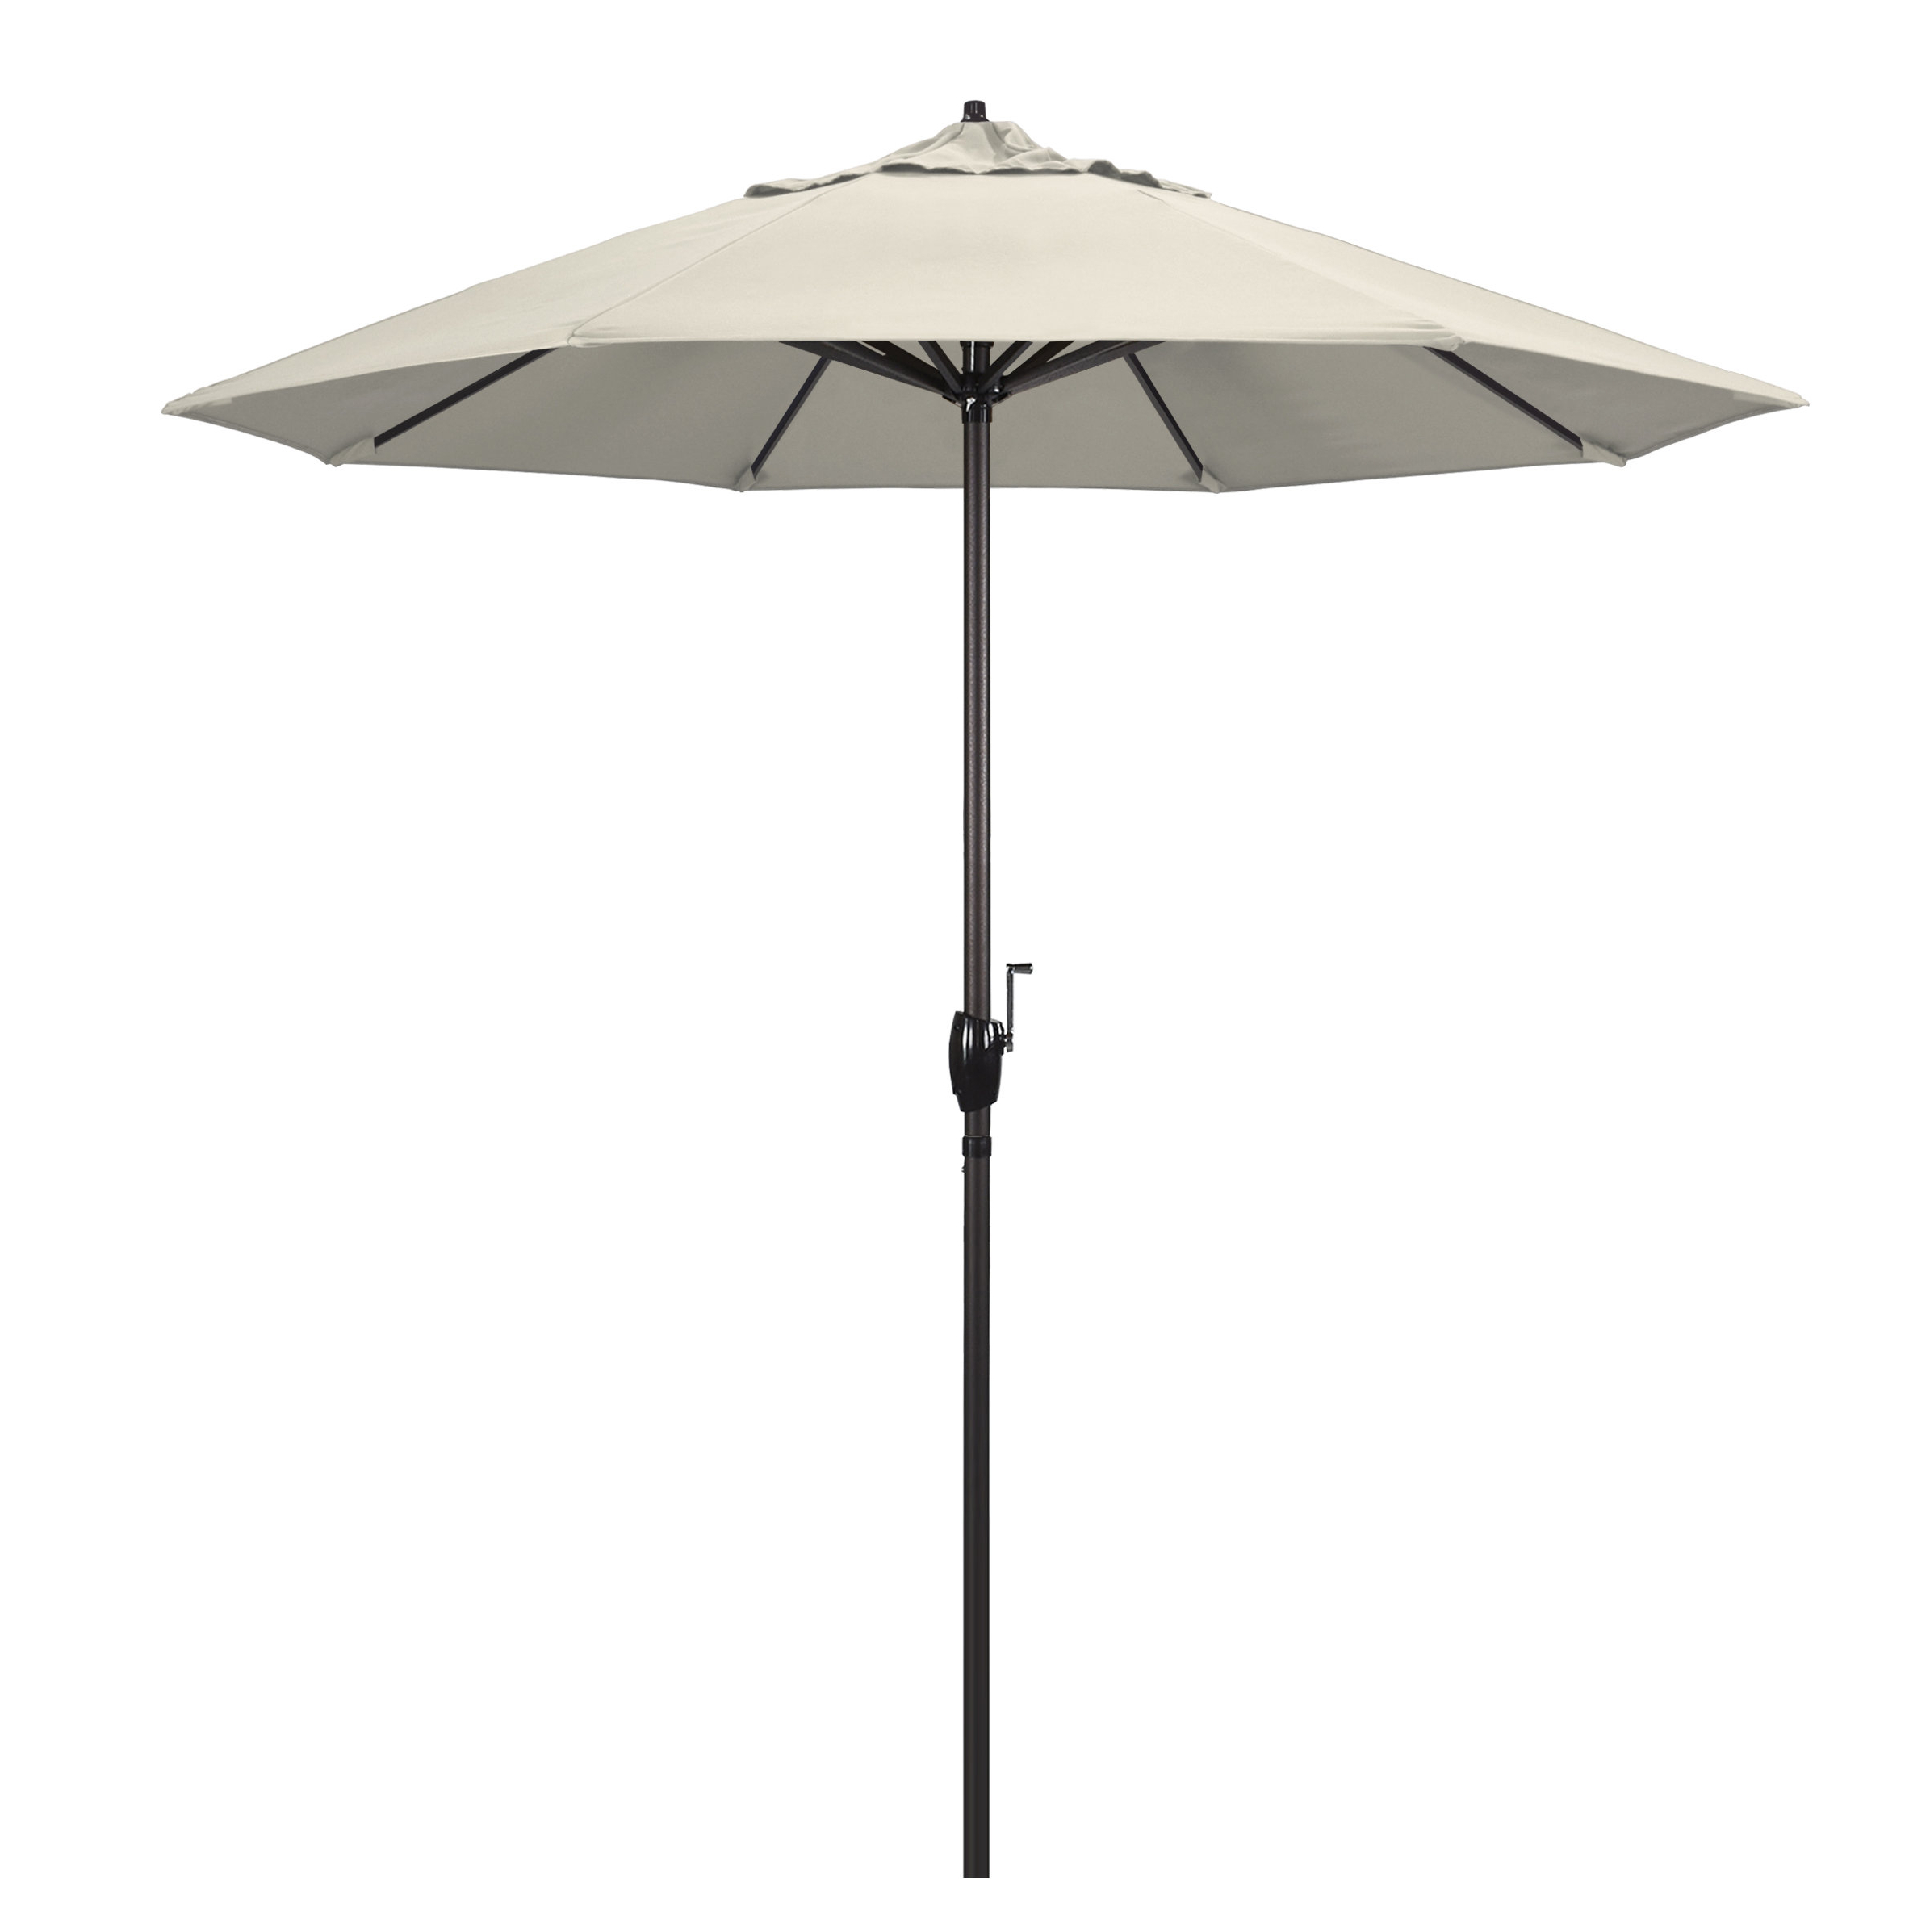 Famous Canora Grey Nunn 8' Market Sunbrella Umbrella With Regard To Crowland Market Sunbrella Umbrellas (View 7 of 20)